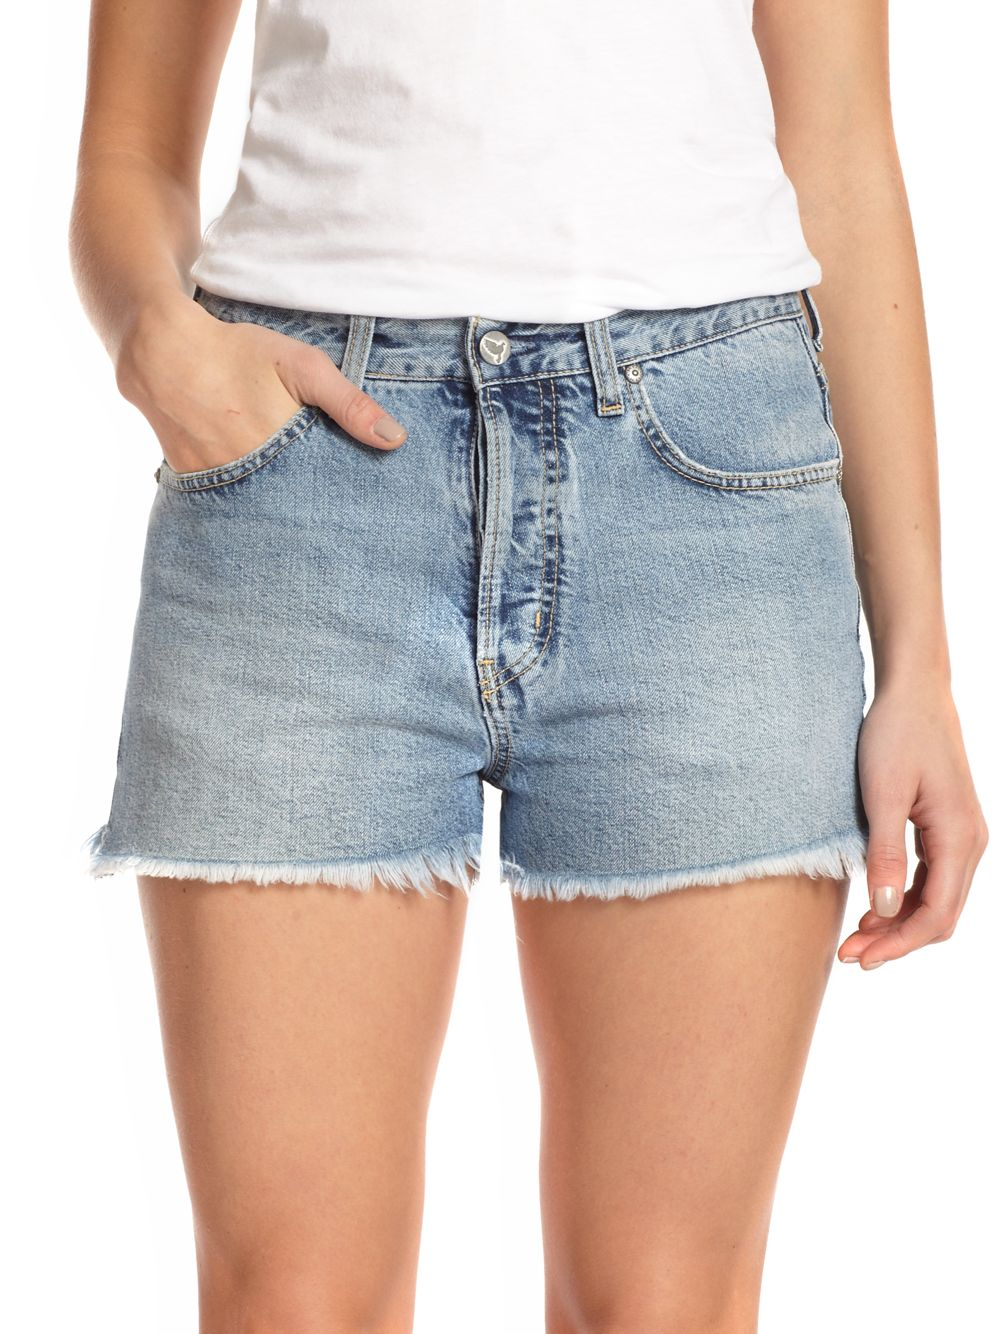 d7240d49c0 M.i.h Jeans The Halsy Cut-off Denim Shorts in Blue - Lyst